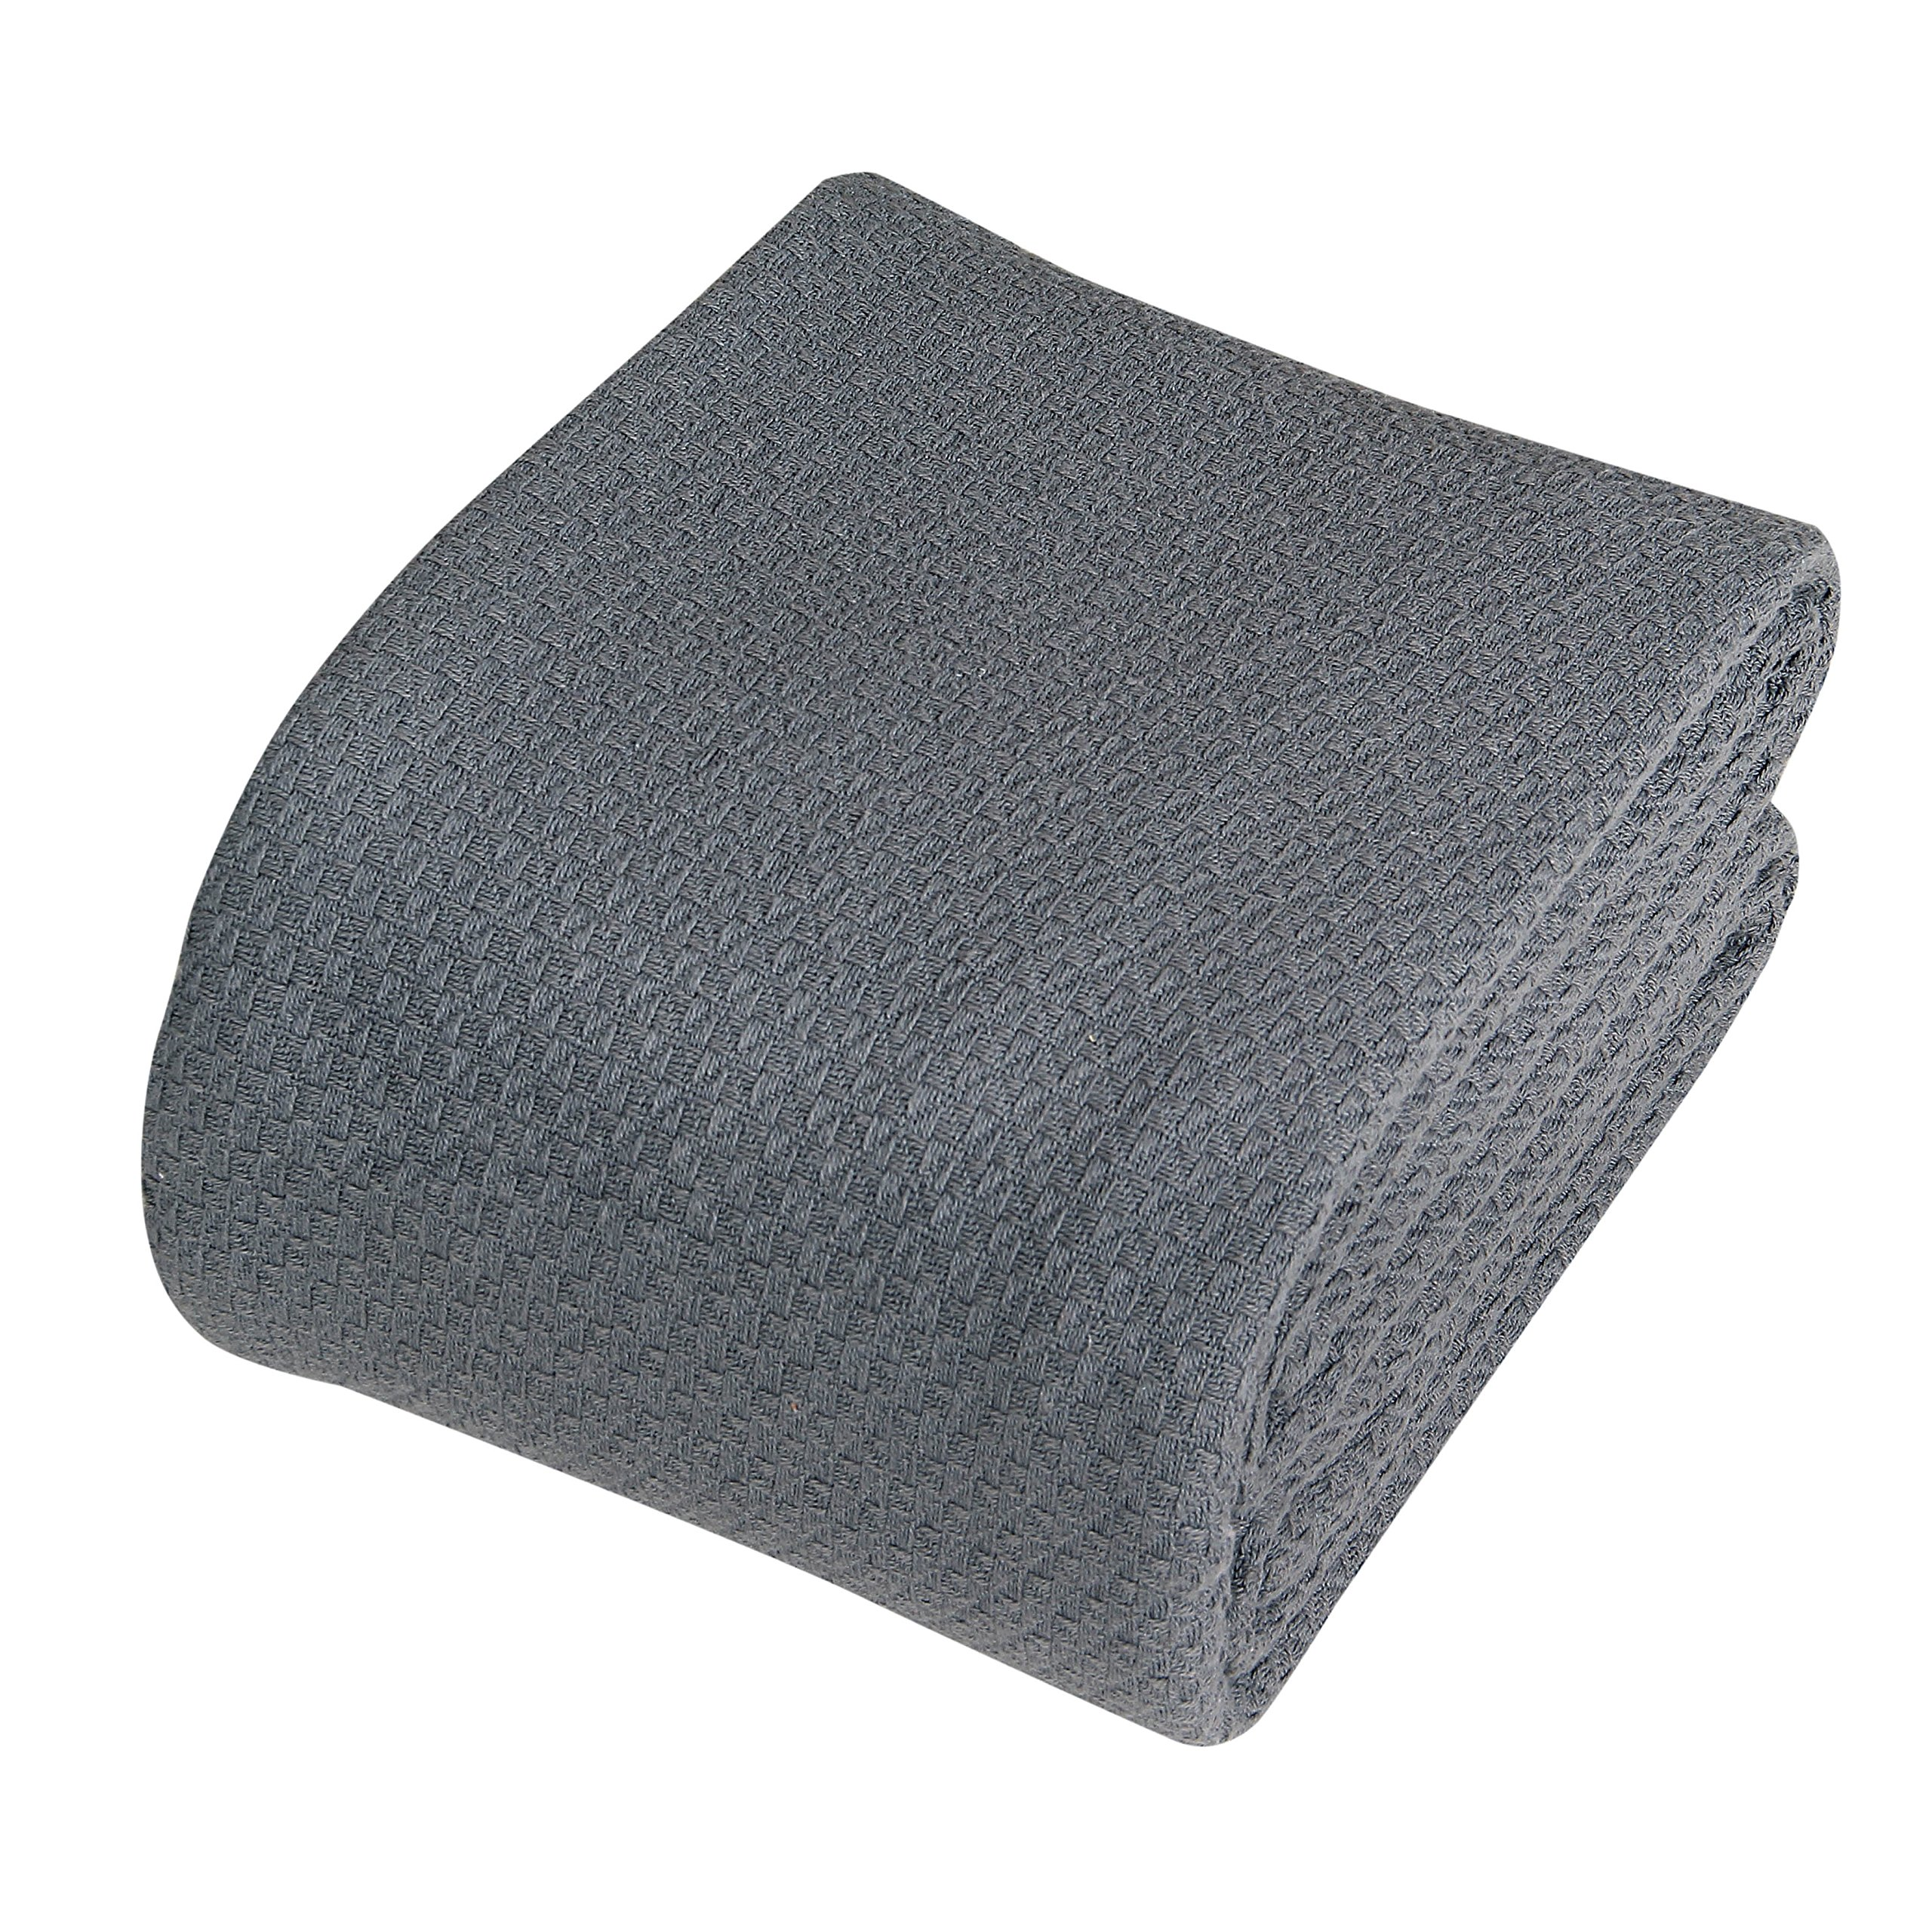 IntradeGlobal Luxury Super Soft Cotton Blankets, Full/Queen, Dark Grey by IntradeGlobal